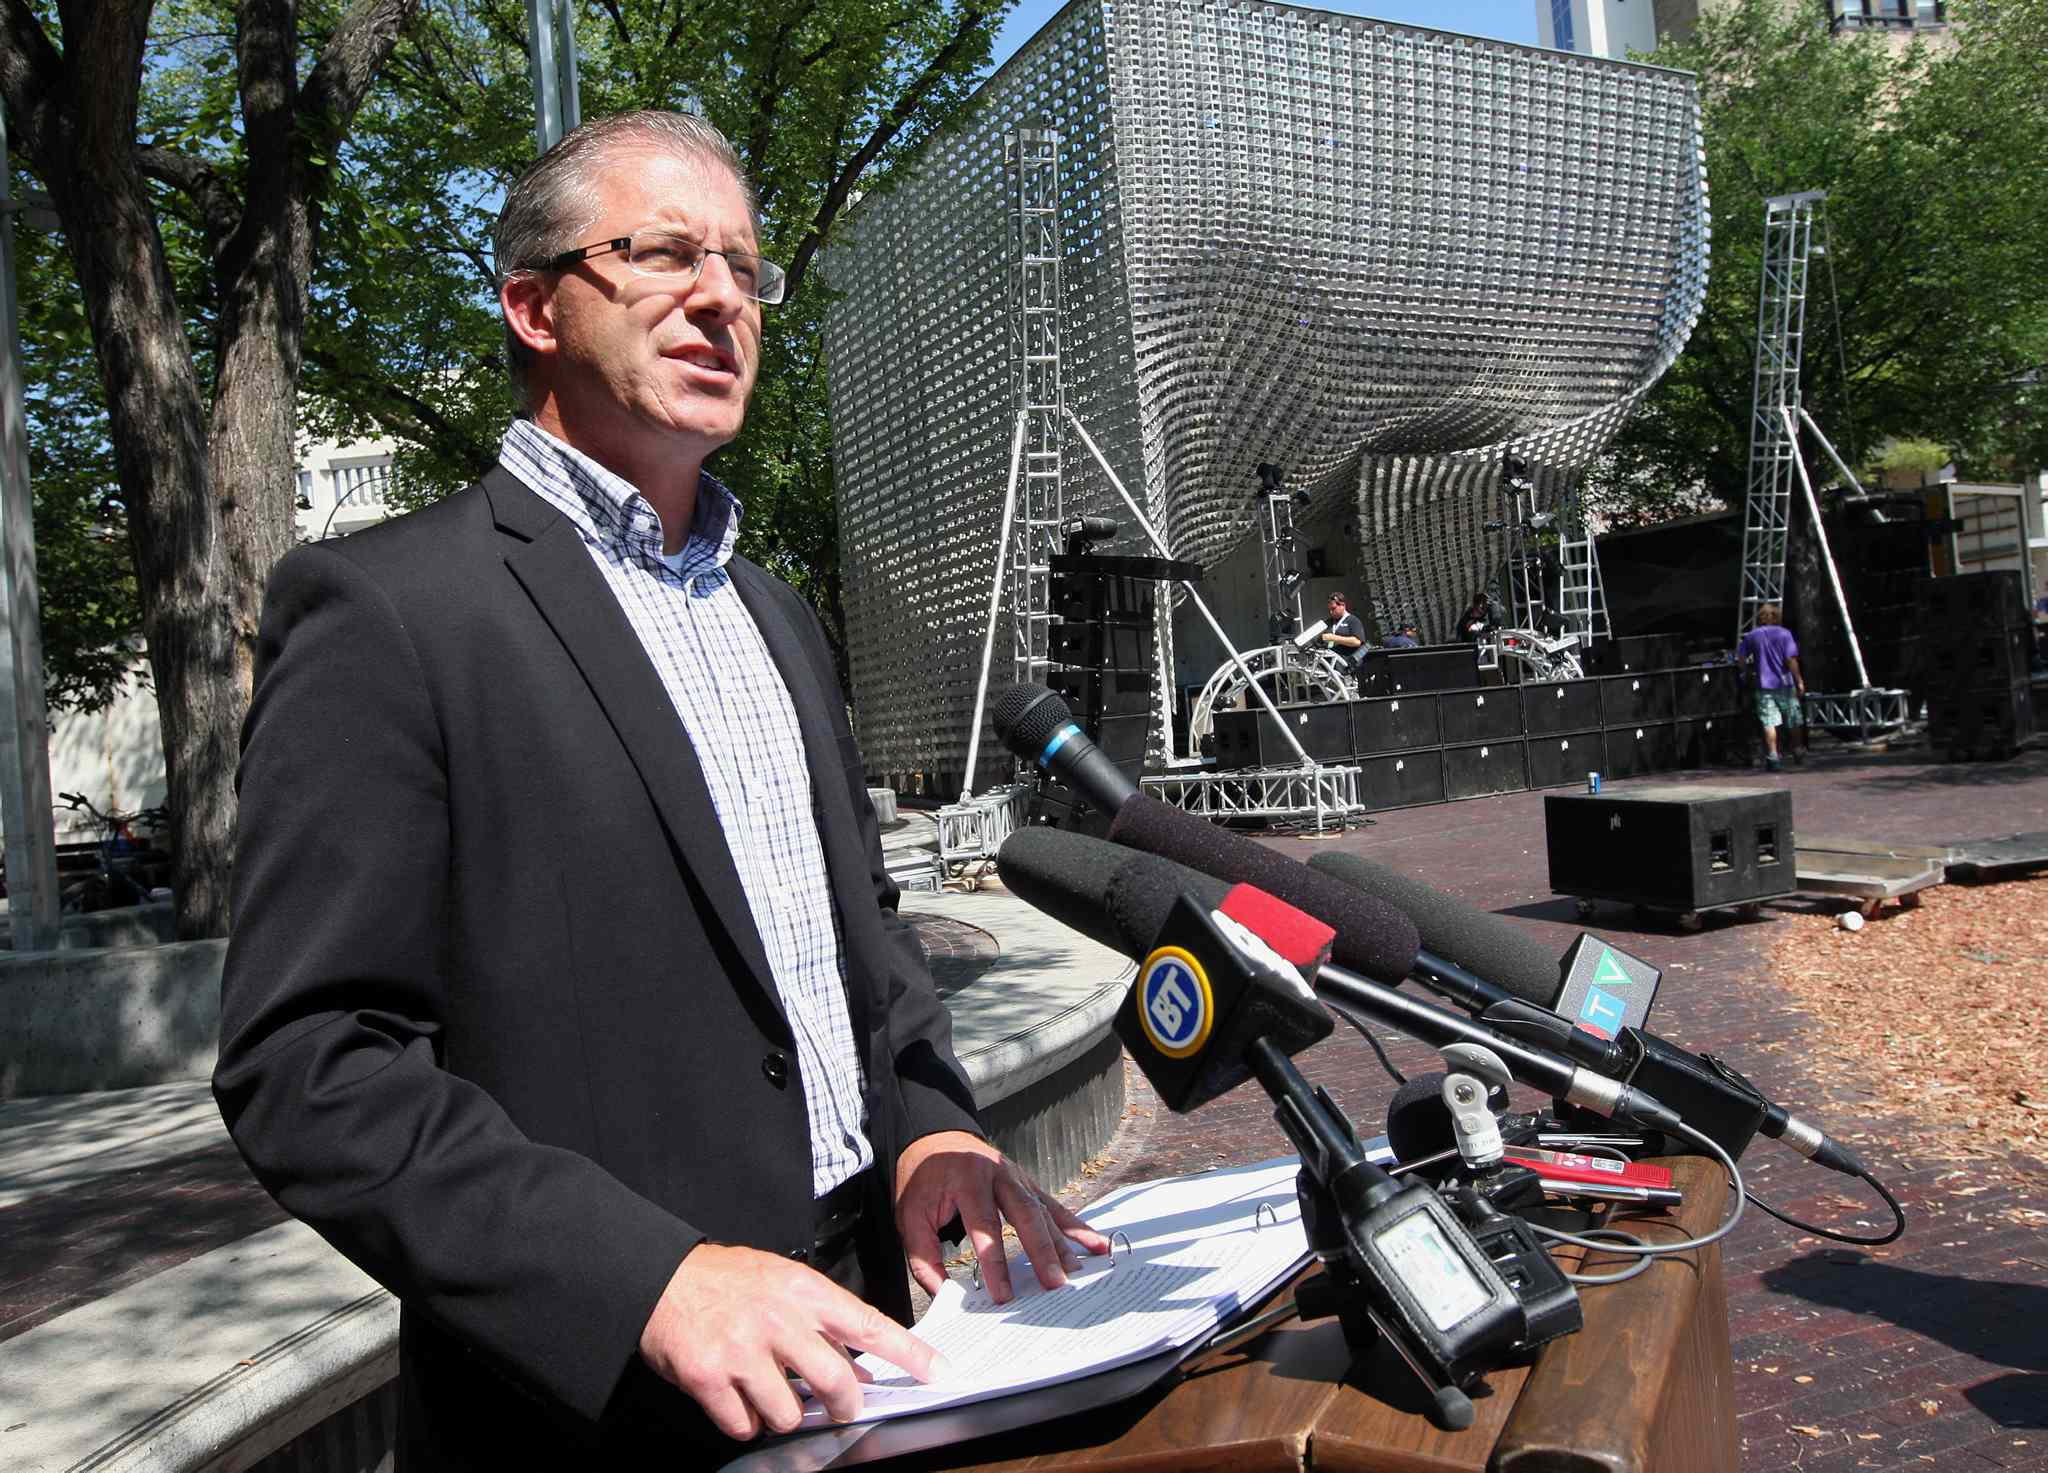 Gord Steeves' polarizing promises have changed the face of the mayoral campaign.